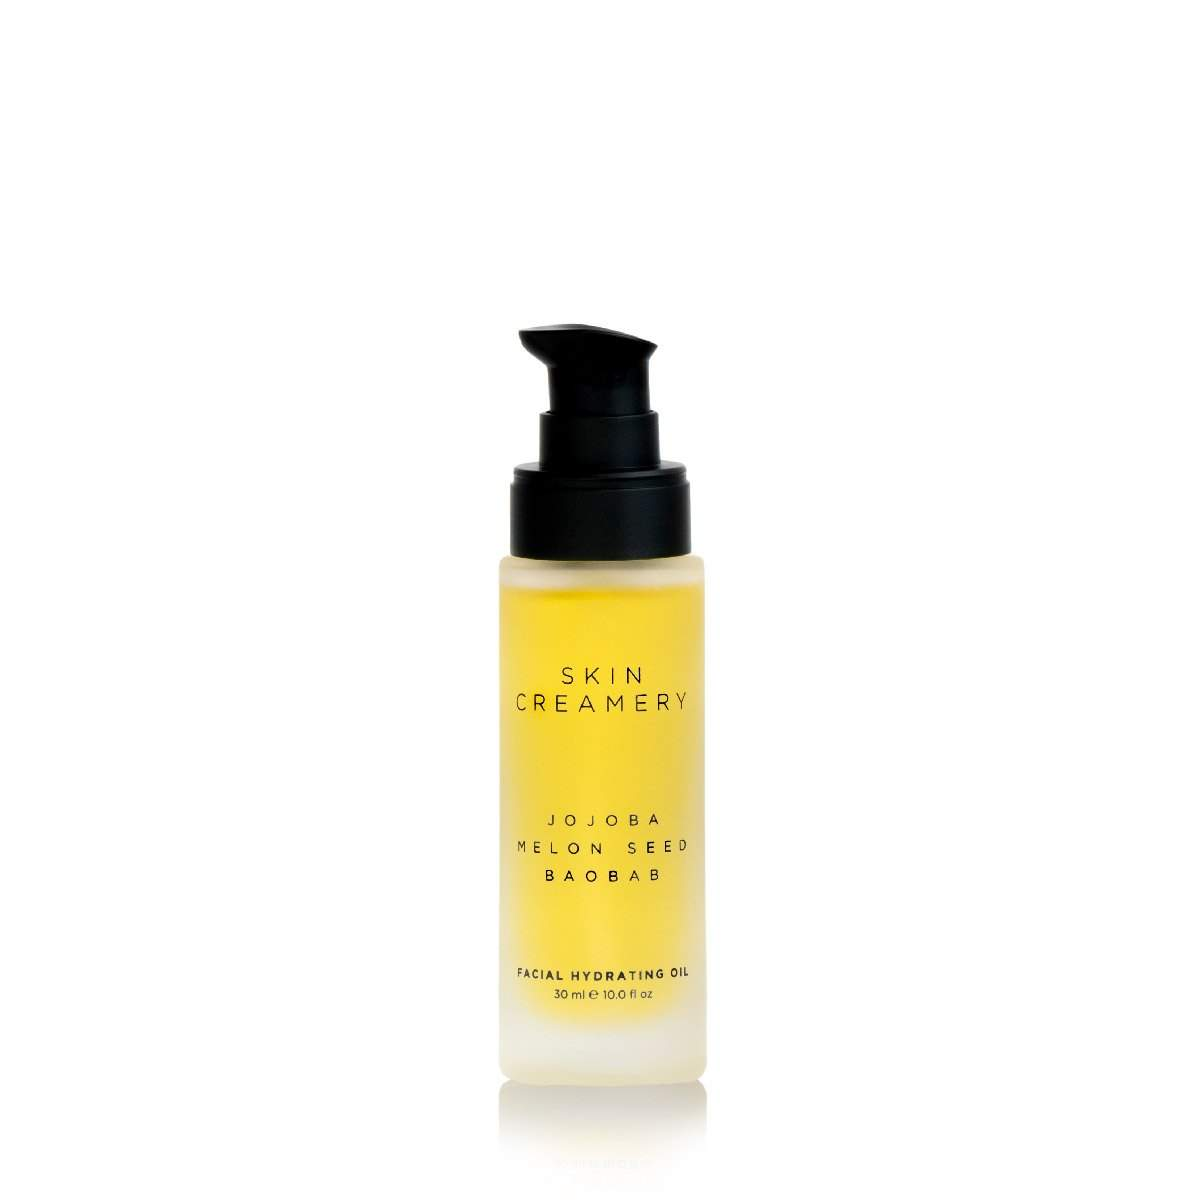 Facial Hydrating Oil by Skin Creamery